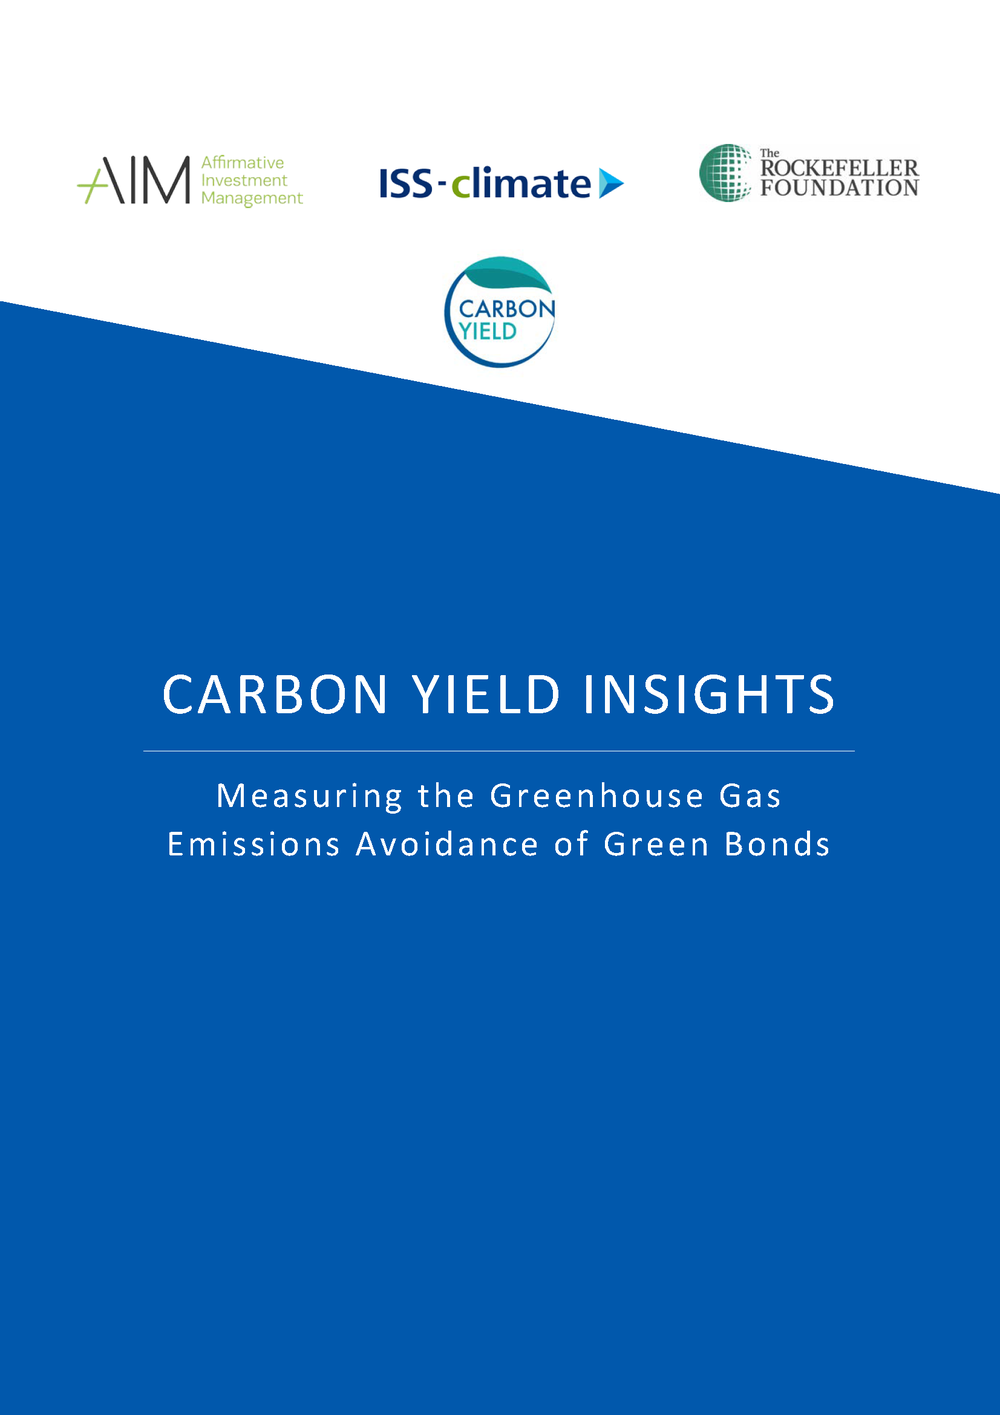 Carbon Yield Insights - The new Carbon Yield Insights Report summarizes AIM's experience with ISS-climate in applying the Carbon Yield and five key findings, over a broad range of issuers – from European corporations to multinational development banks – and more importantly, a broad range of funded activities across a breadth of geographies.